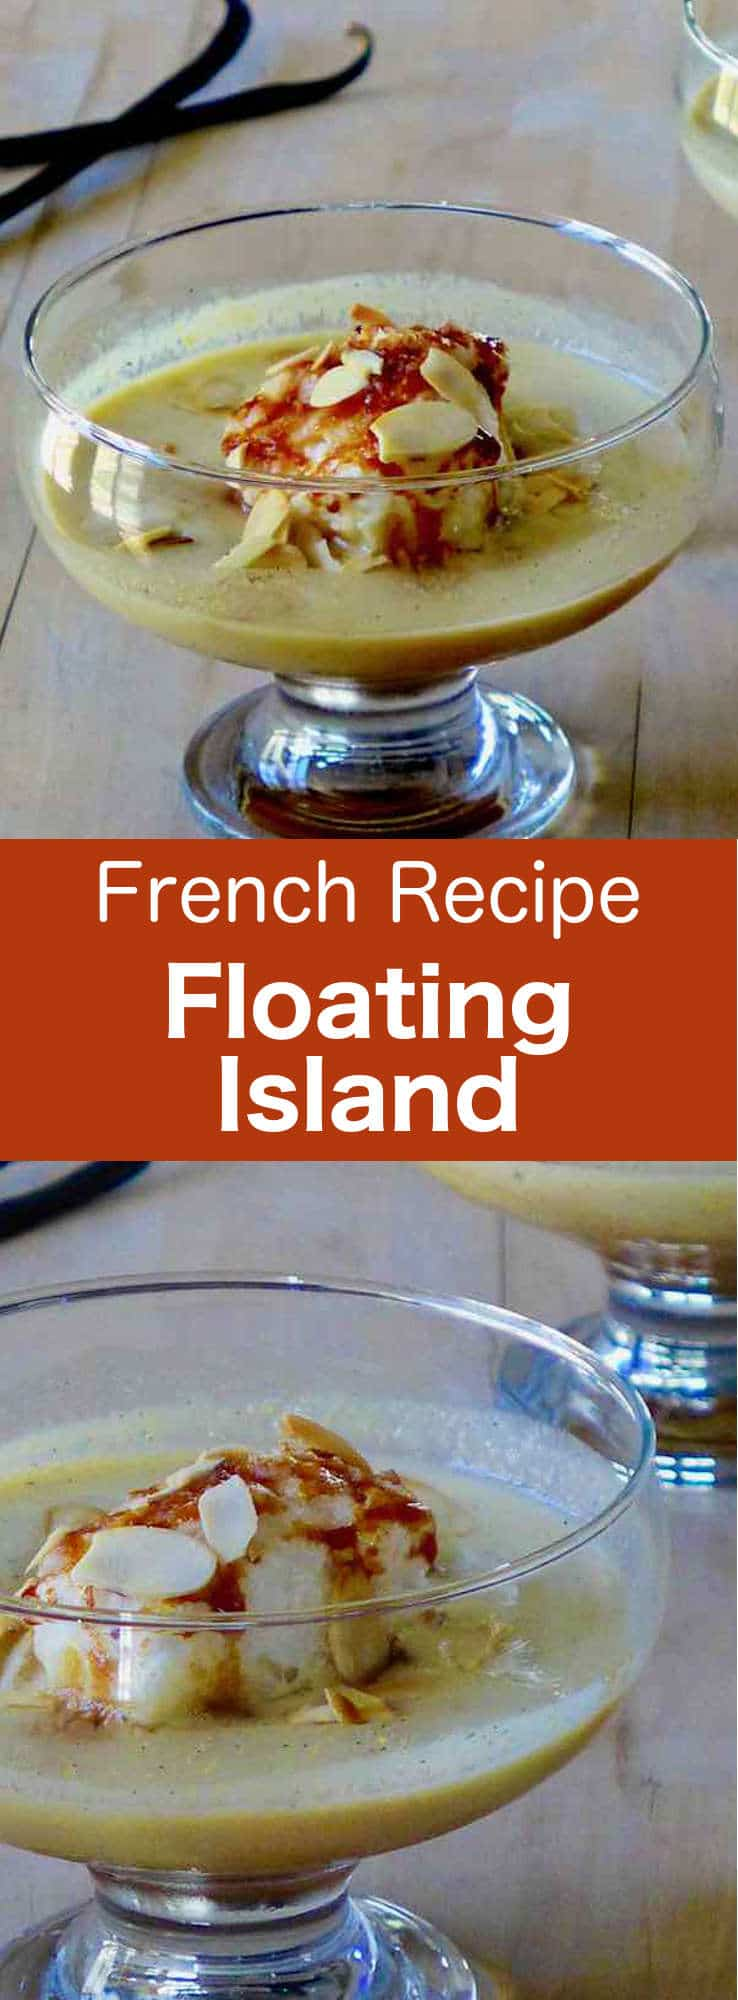 Floating island is a delicious airy French dessert prepared with beaten and poached egg white, placed on custard, and covered with caramel and almonds. #French #196flavors